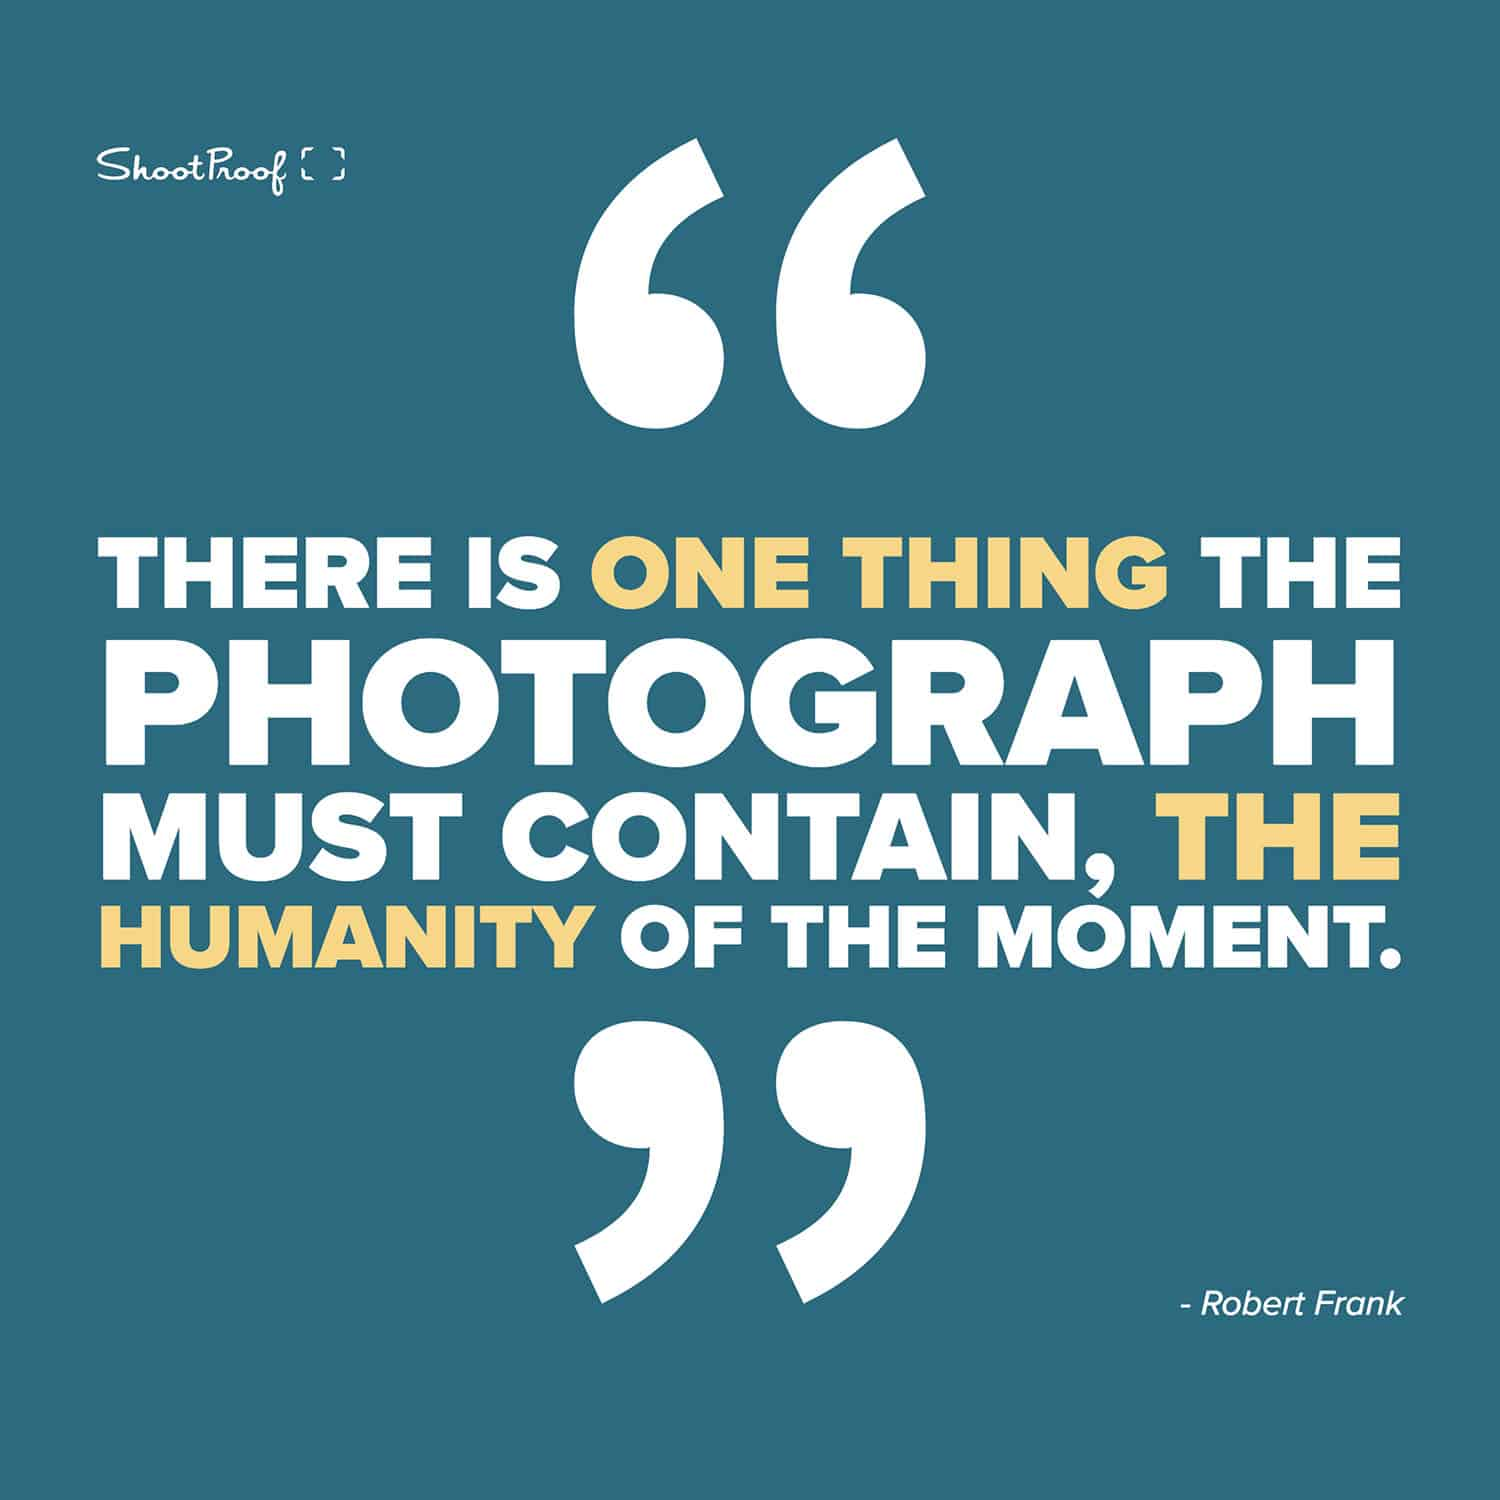 """""""There is one thing the photograph must contain, the humanity of the moment."""" - Robert Frank"""